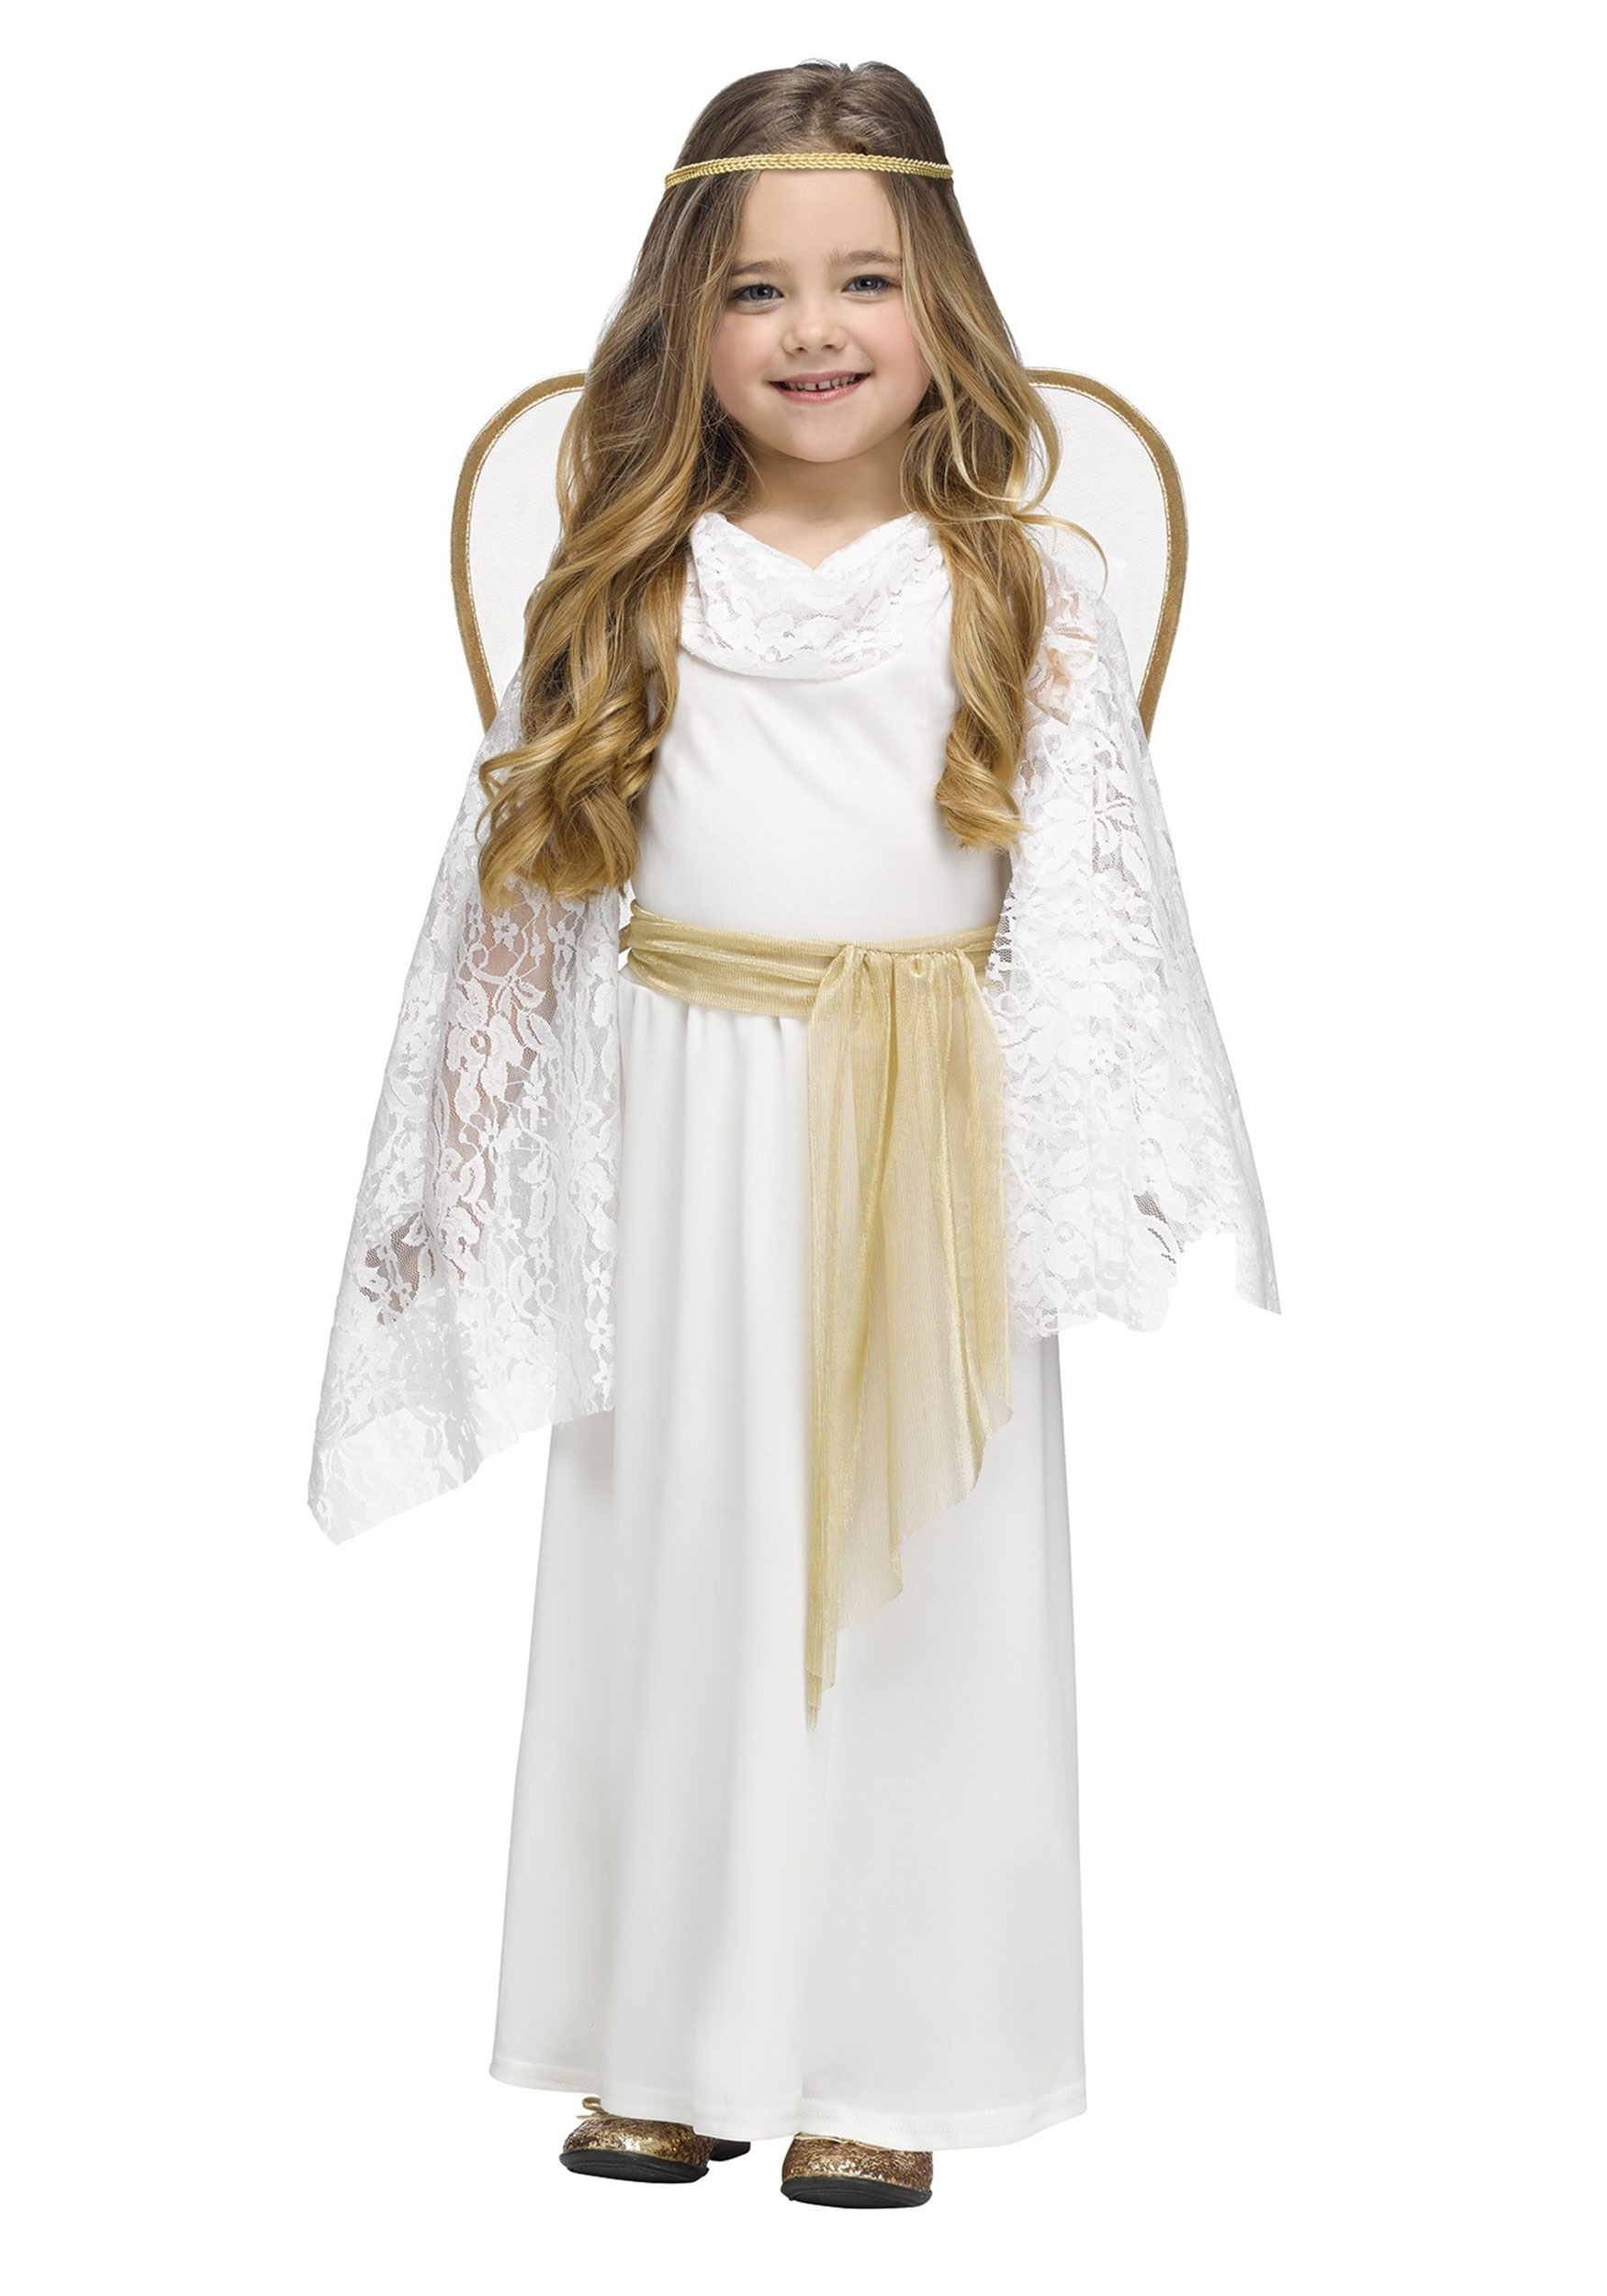 Toddler Angelic Miss Costume